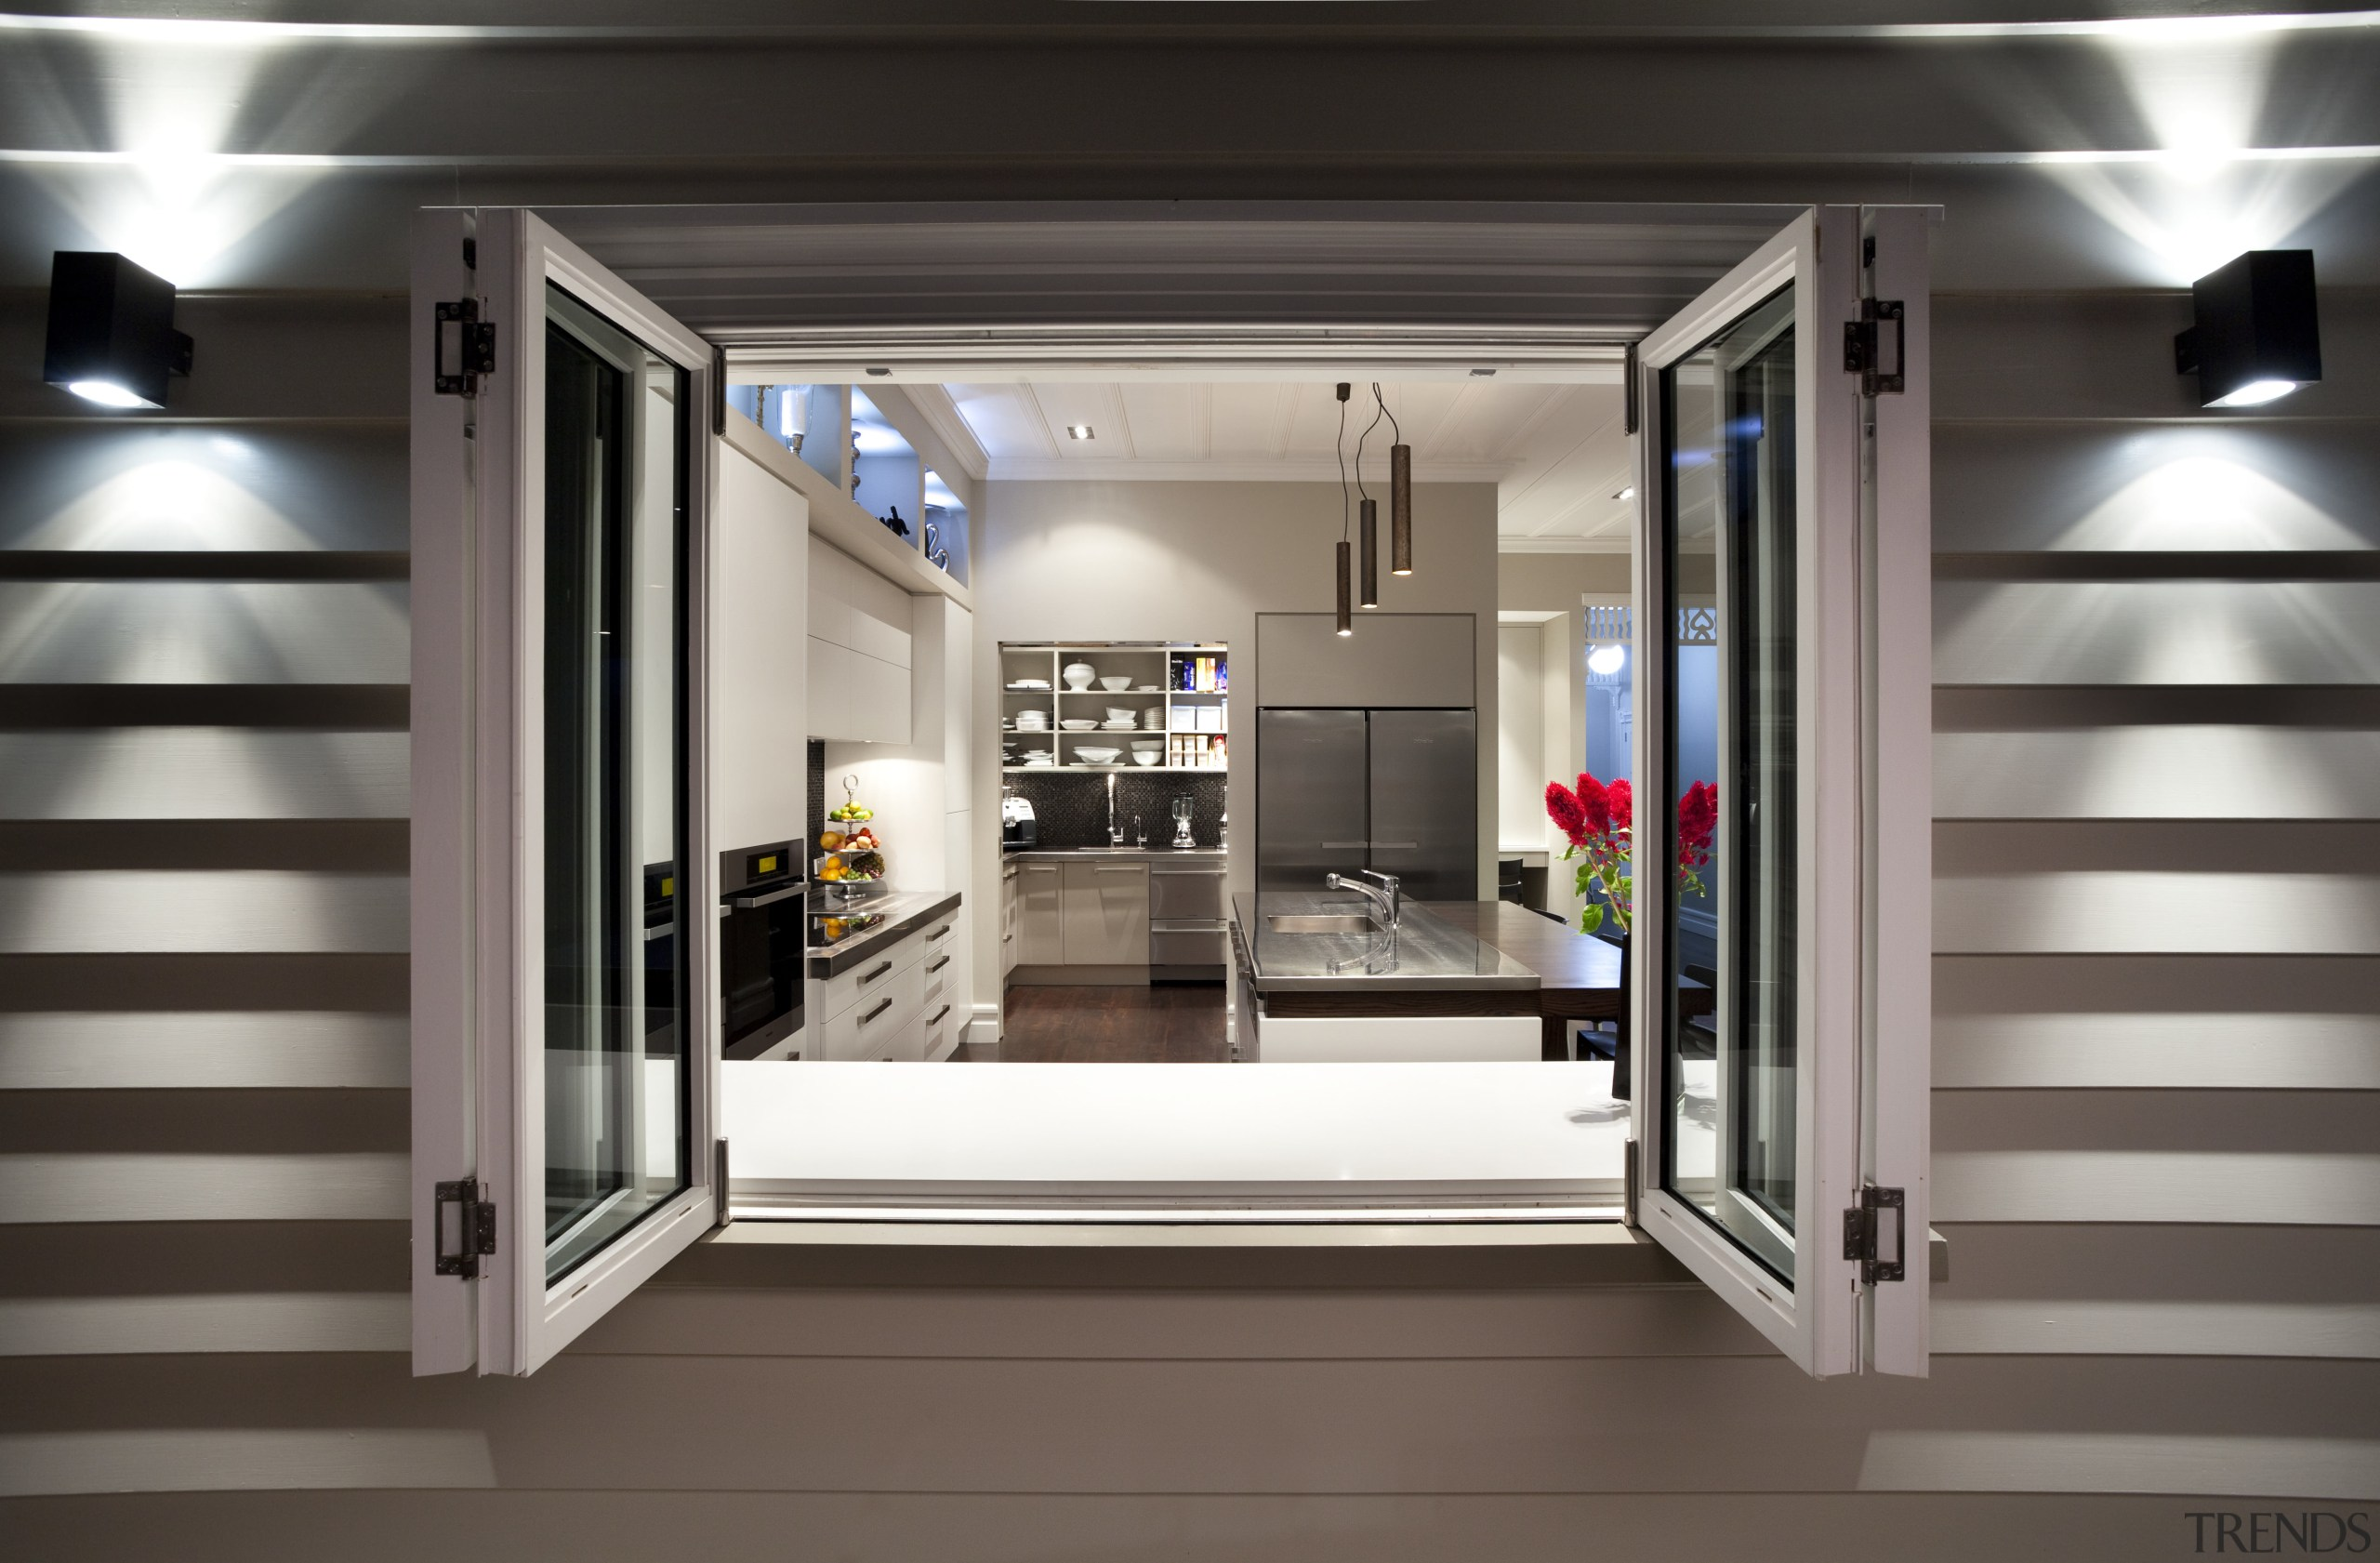 view of kitchen through window from outside - interior design, gray, black